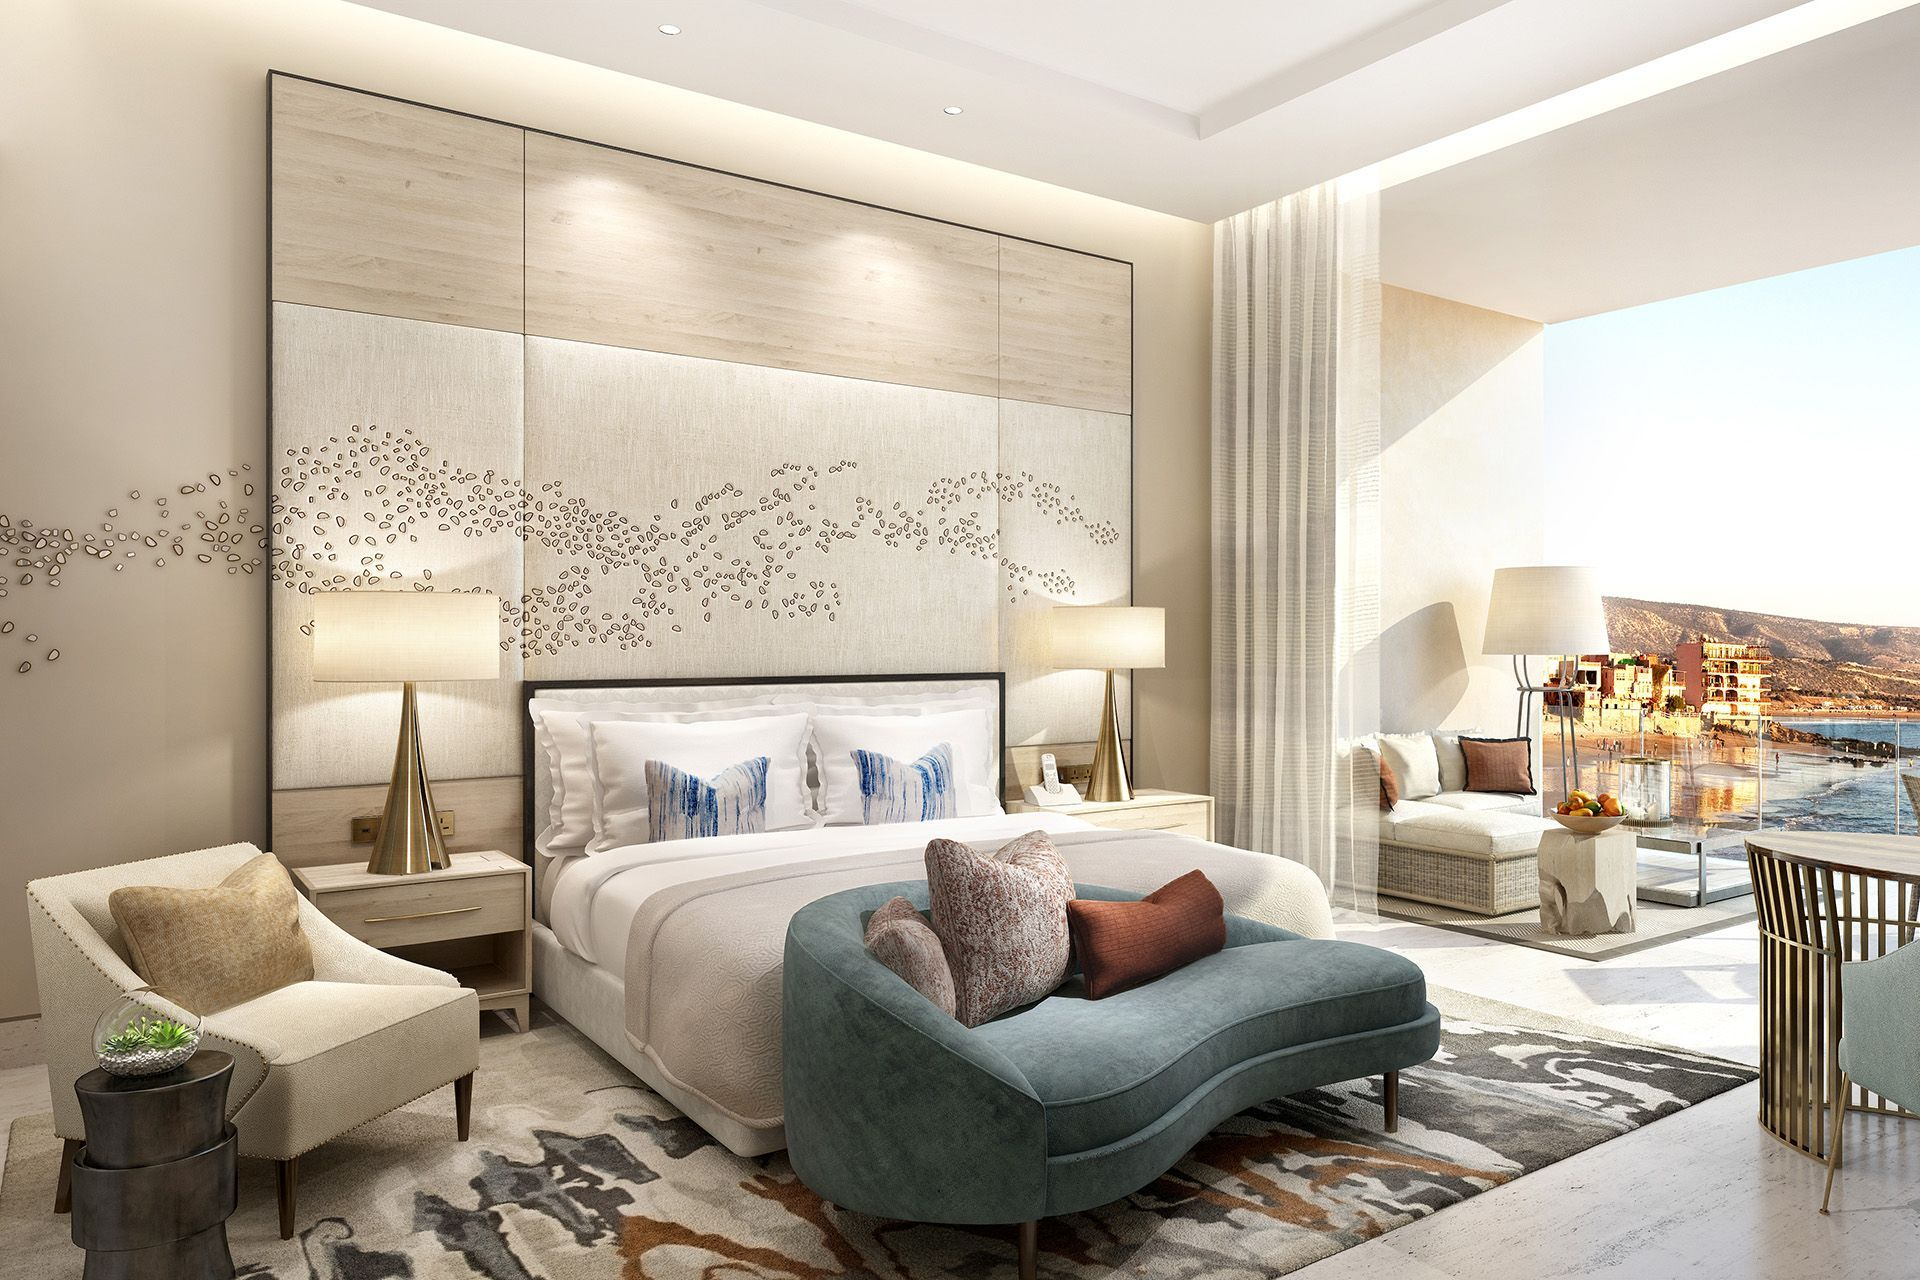 Four seasons taghazout interior designers wimberly for Bedroom interior design